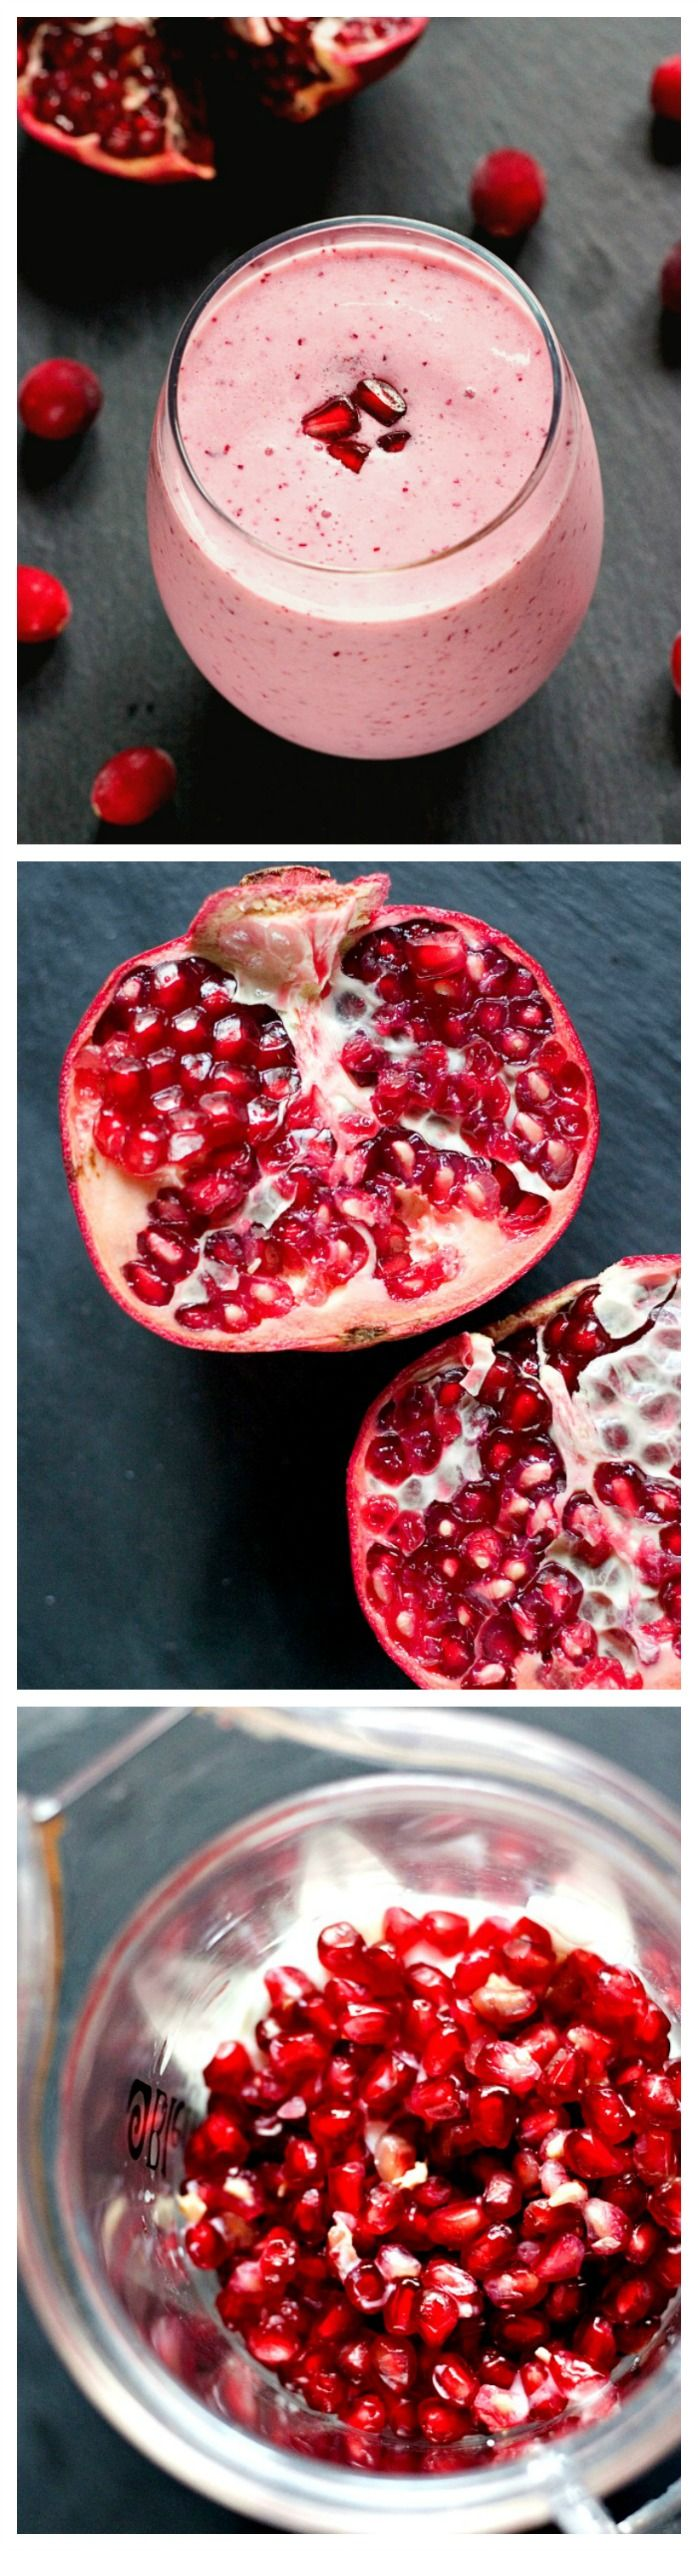 Cranberry Pomegranate Smoothie by crunchycreamysw: Perfect pick-me-up!